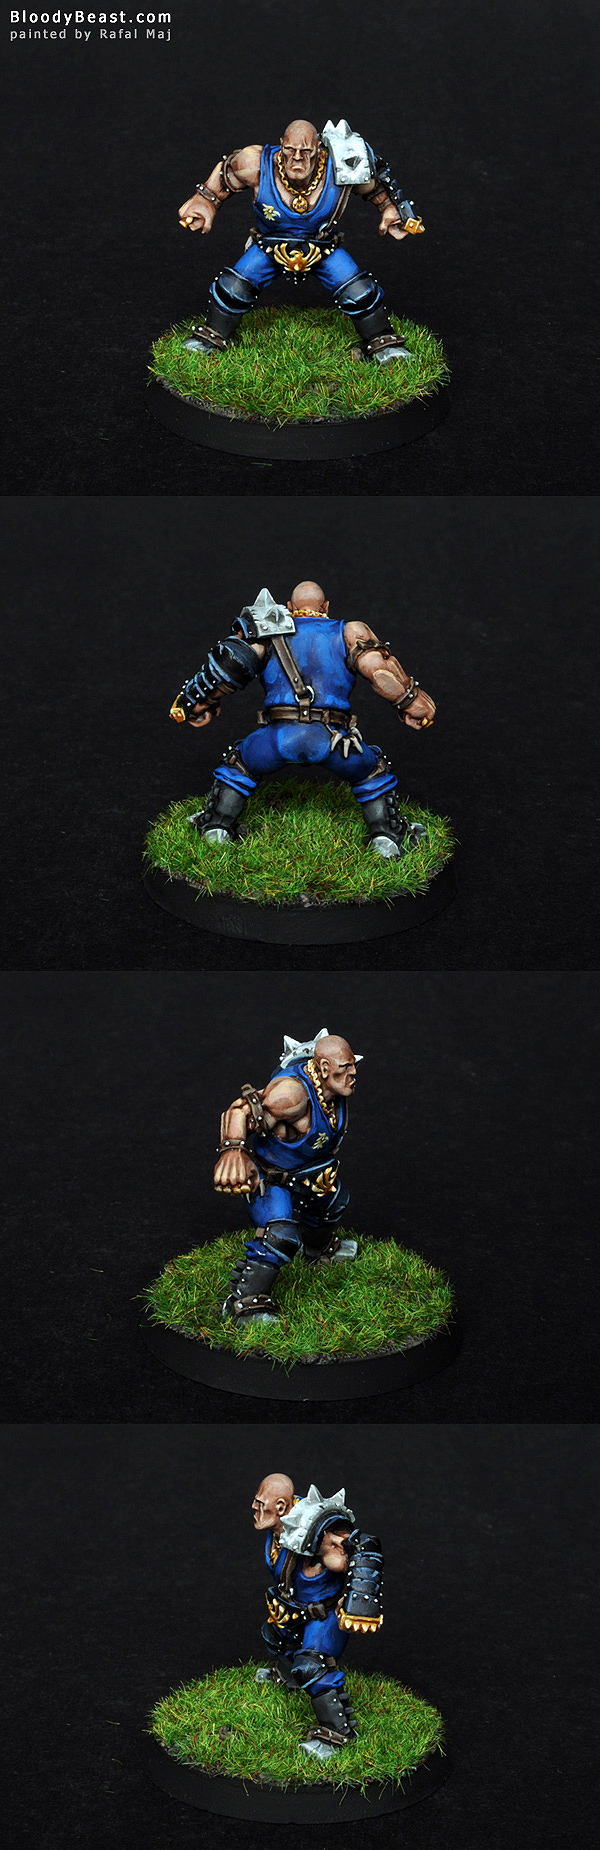 Blood Bowl Mighty Zug painted by Rafal Maj (BloodyBeast.com)